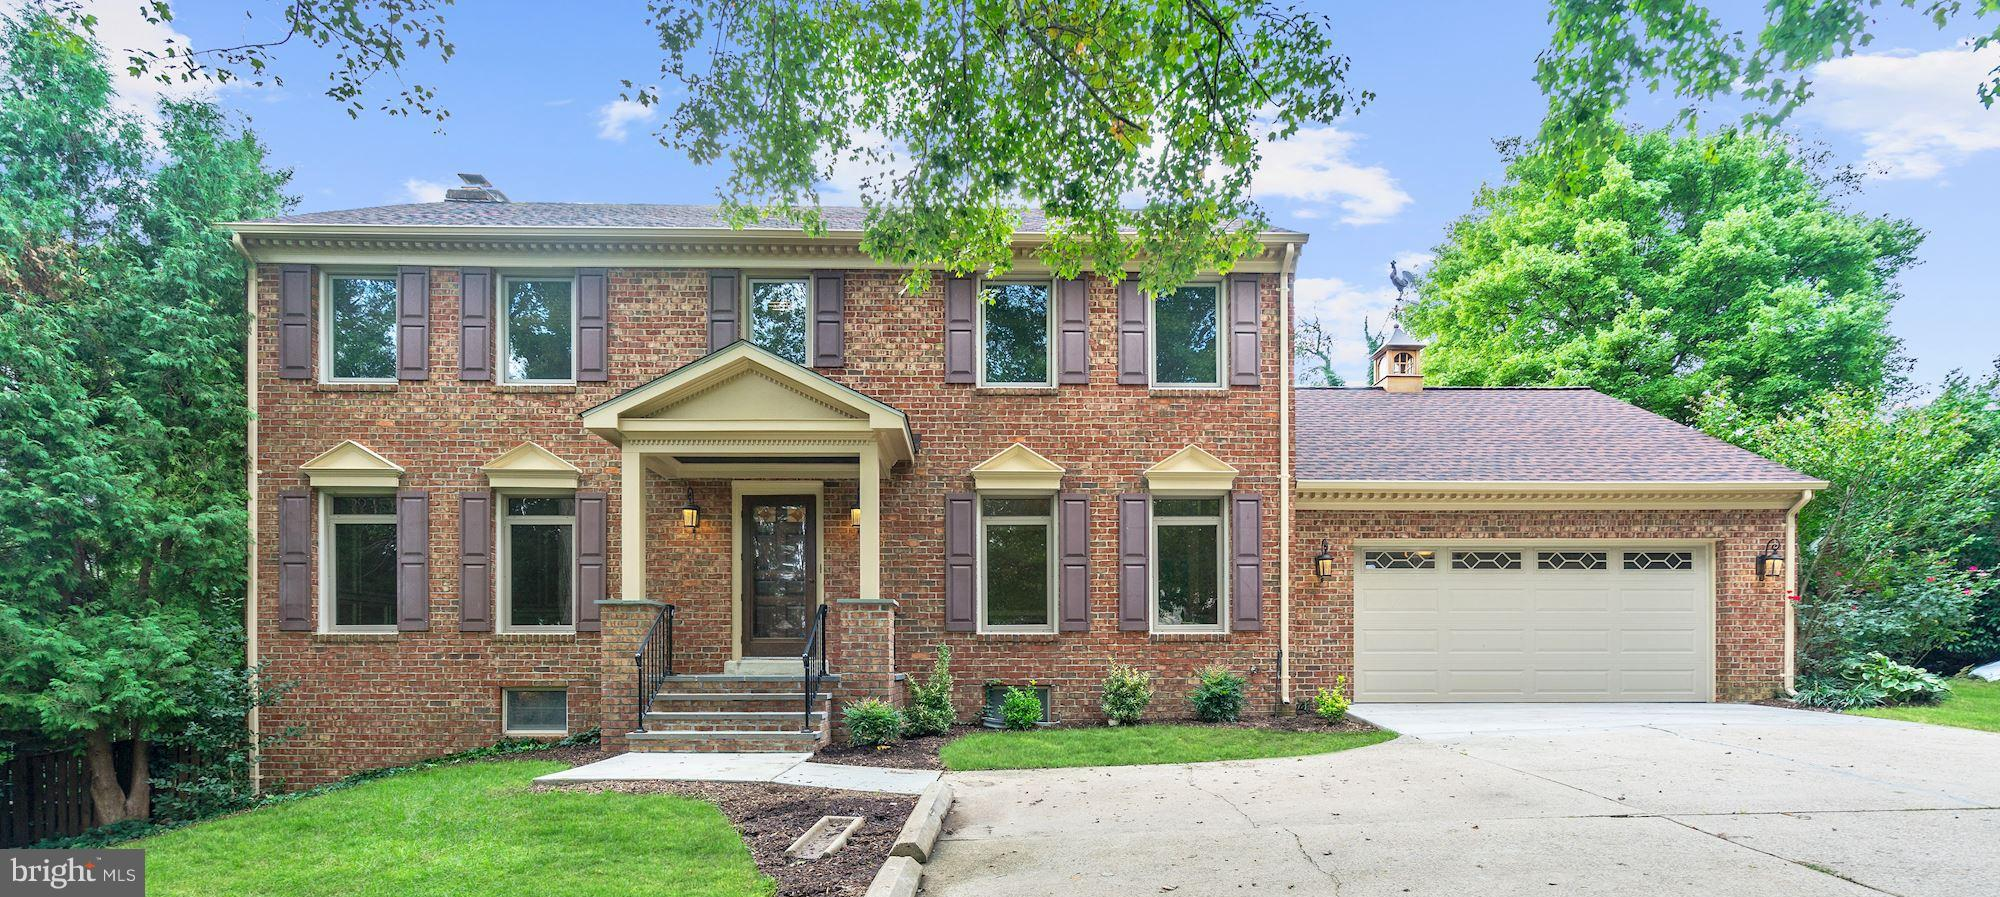 Wonderful all brick home on quiet cul-de-sac w/beautiful heated pool. 5 BR/3.5 BA. Recently renovated KT w/new cabinets, counters & appliances. Gorgeous sun room addition. Family rm. w/fpl & built-ins. Rec. rm. w/wood stove. Upgraded custom windows. Inlaw suite. Hardwood & tile floors. New vinyl floors in bsmt. Patio w/ firepit. New roof, hot water heater, bsmt door & front porch. Garagetek floor.